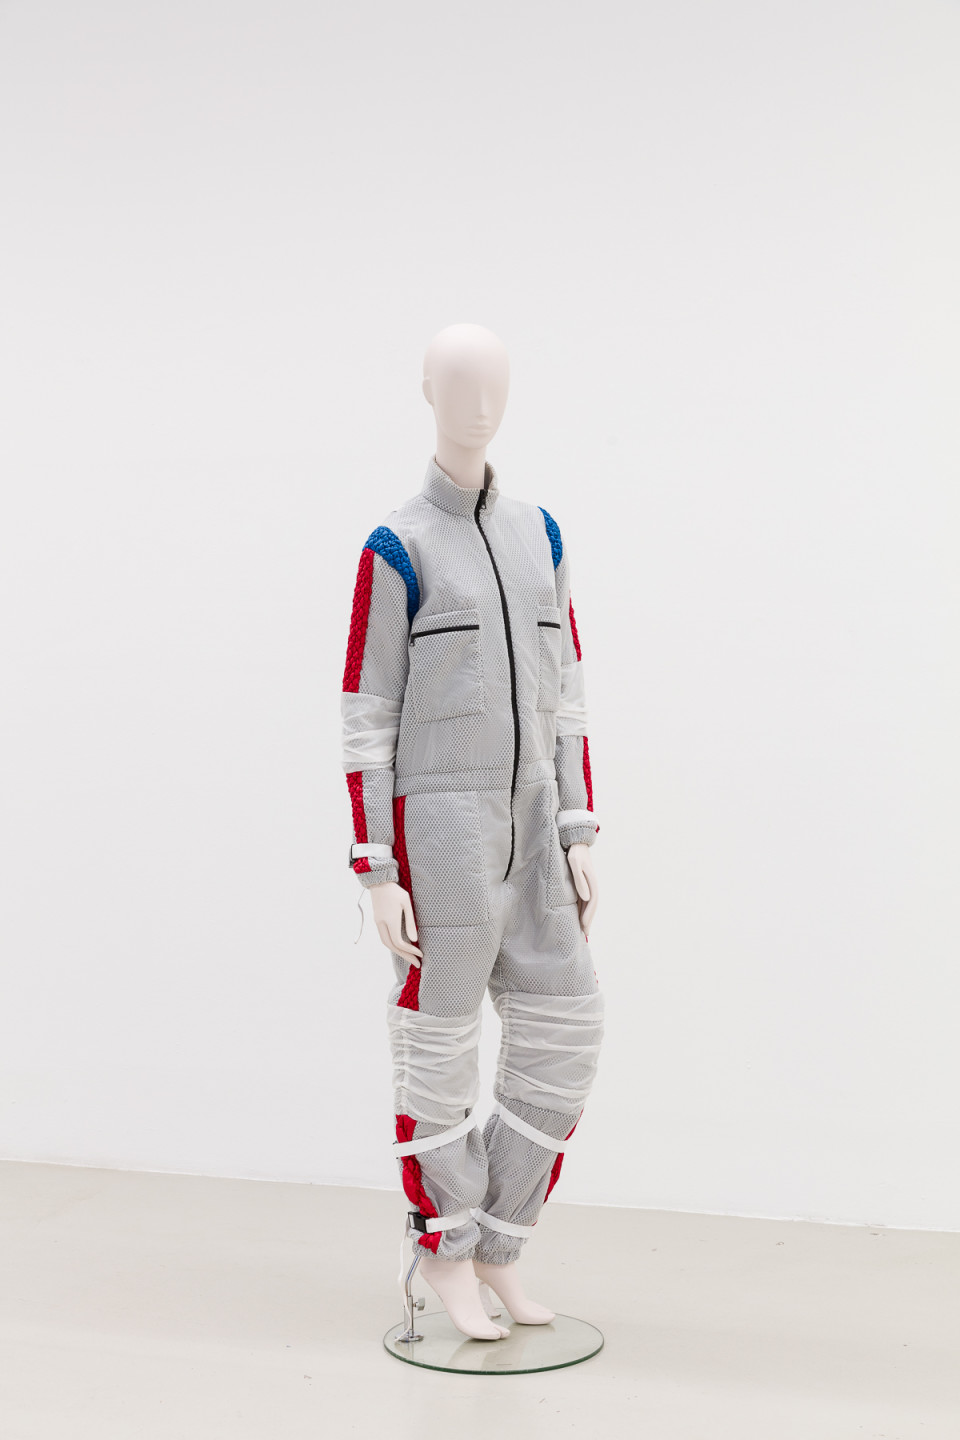 George Henry Longly The Liberator, 2016 Neoprene garment made in collaboration with James Long (Provenance: We All Love Your Life, Red Bull Studios NY 2016) 23 x 76 x 140 cm 9 1/8 x 29 7/8 x 55 1/8 in